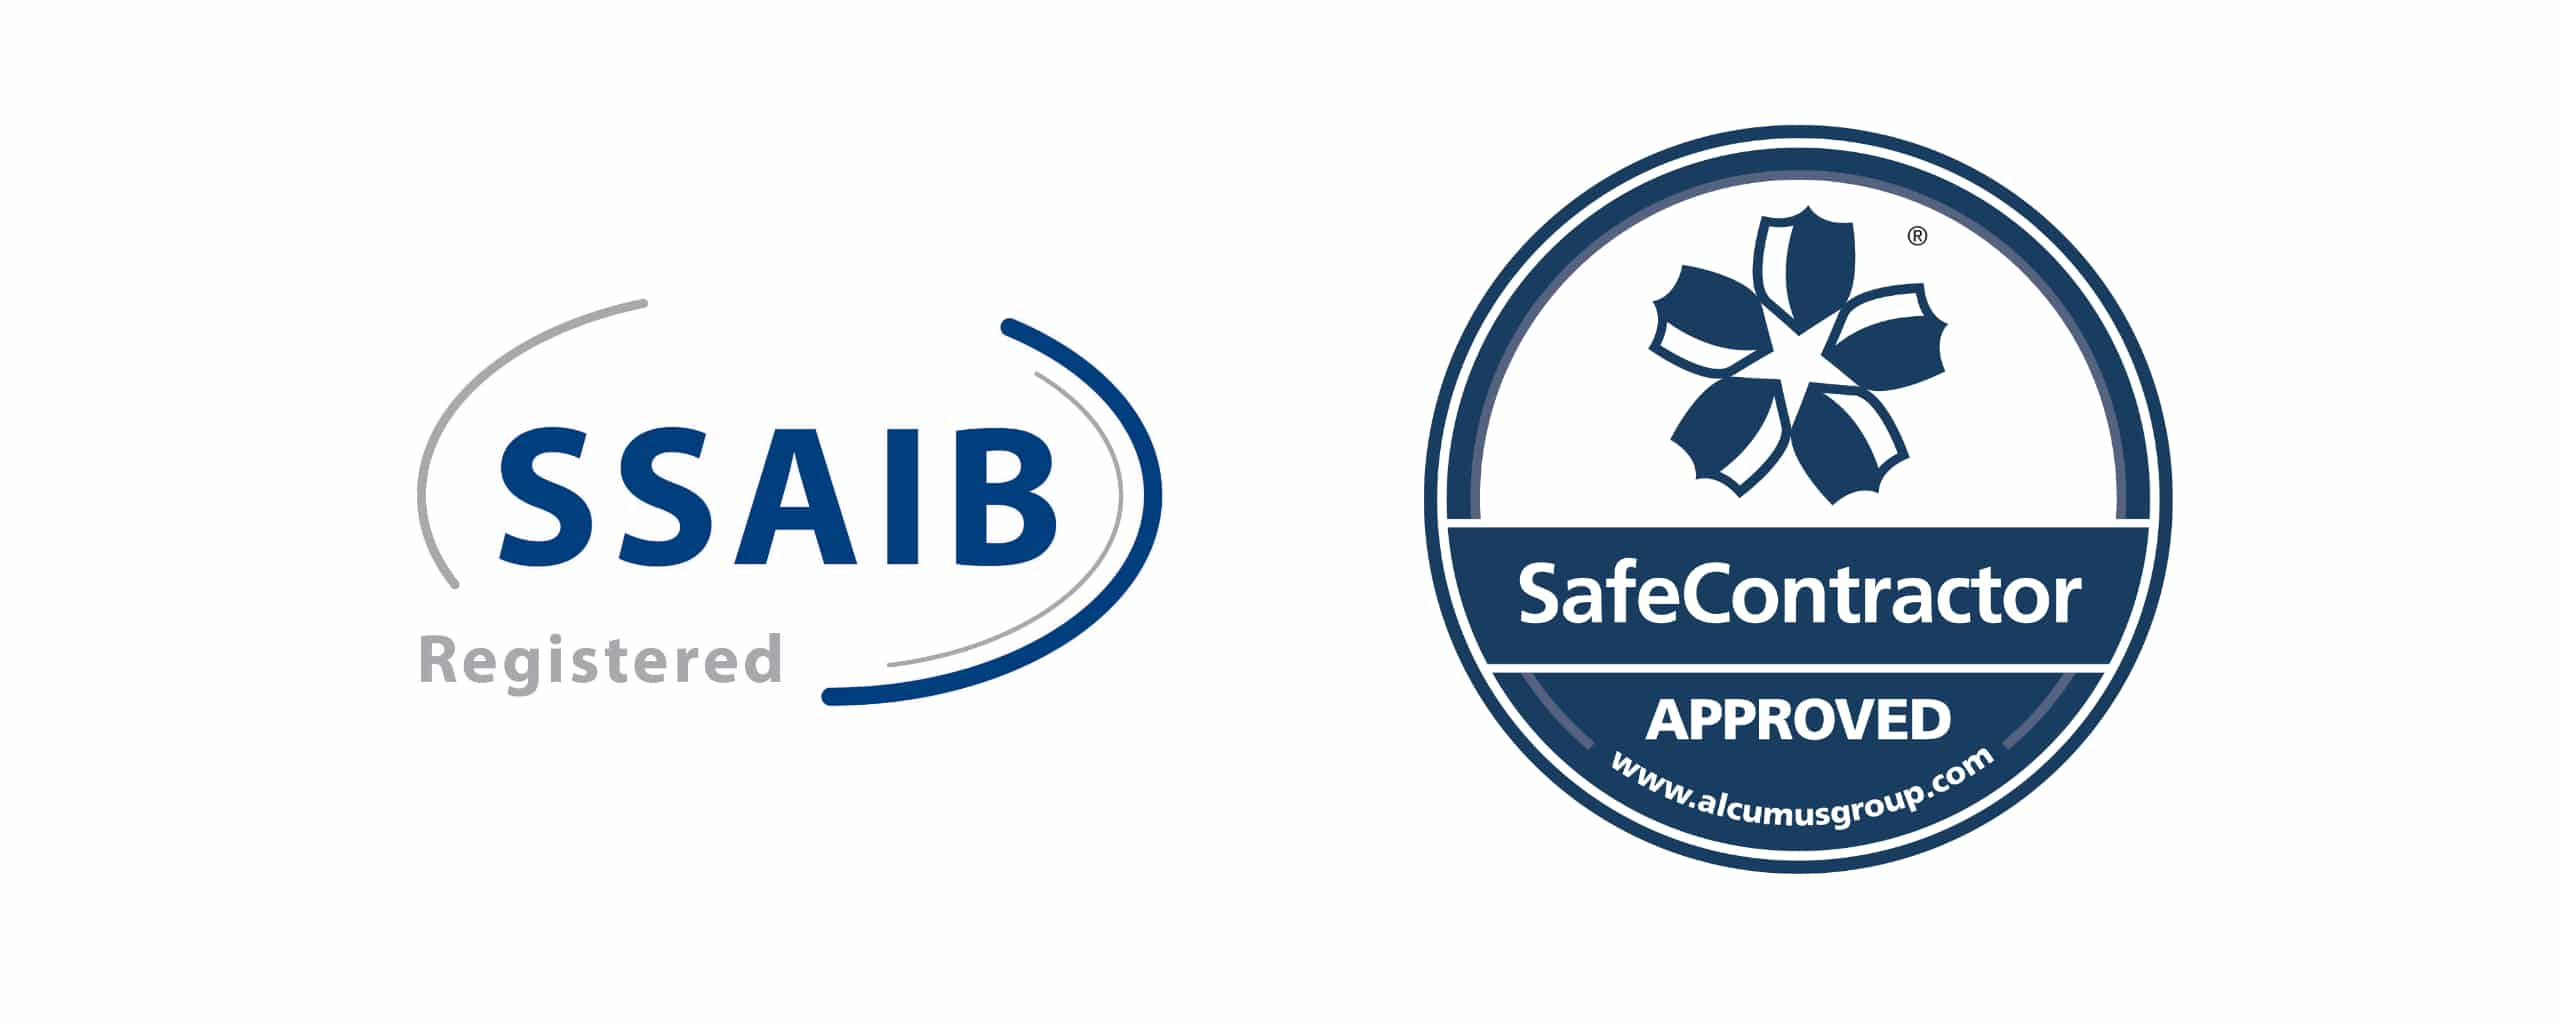 Seen Security - Safe Contractor Accreditation & SSAIB registered